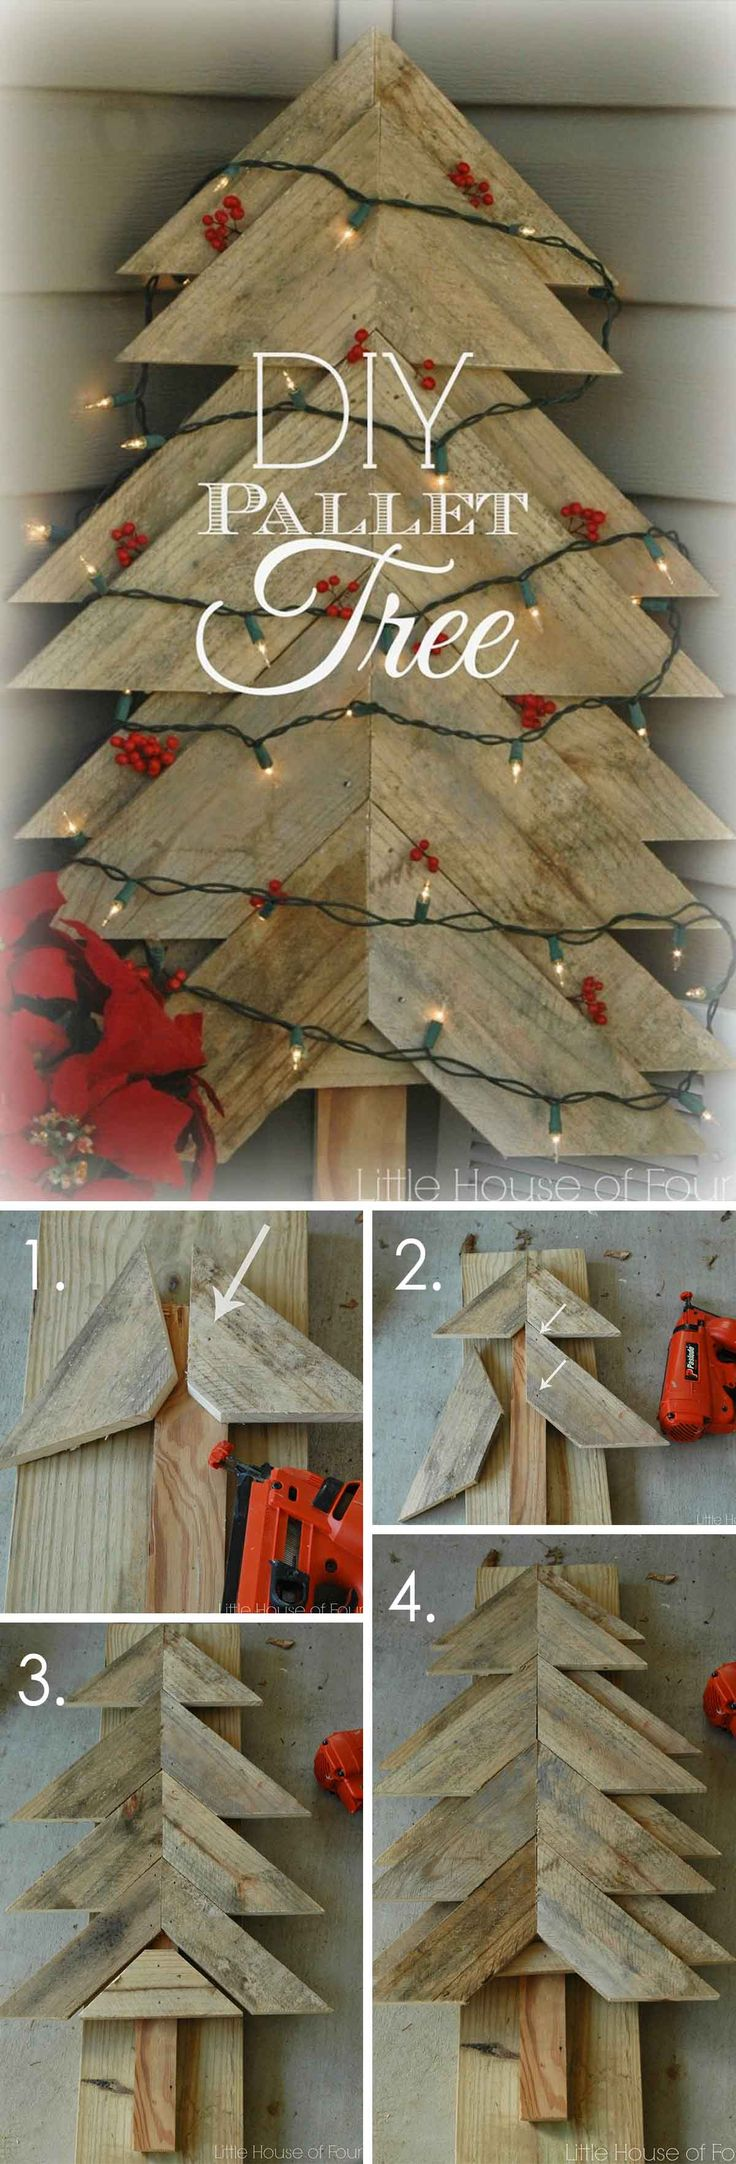 More DIY Christmas Tree Ideas for Pallets